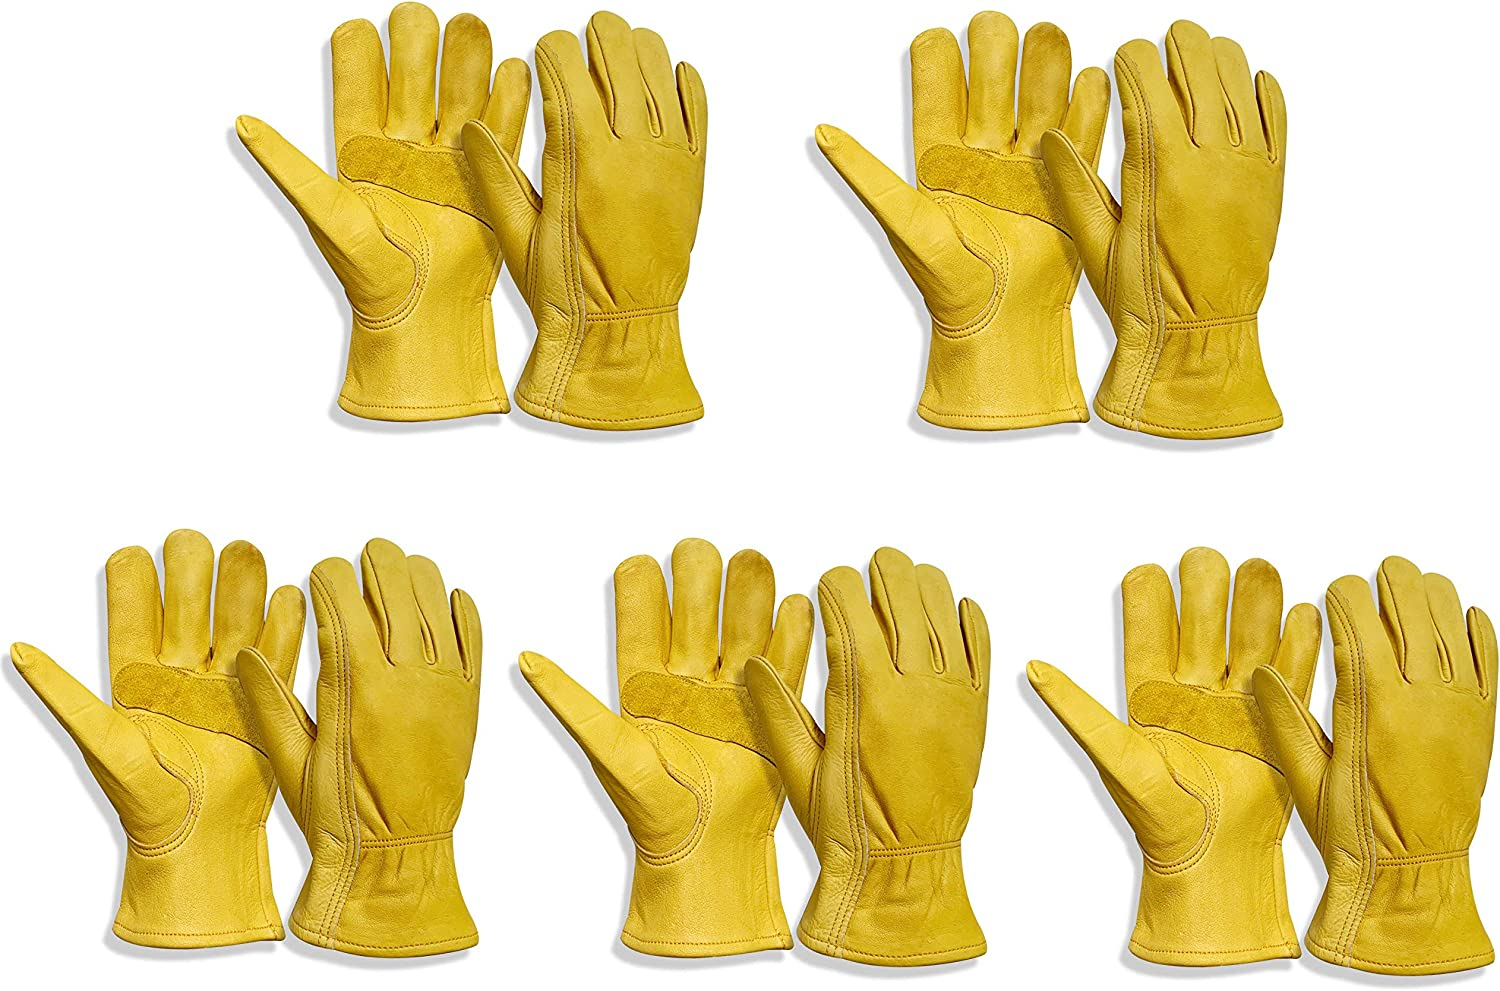 Leather Work Gloves Stretchable Max 80% OFF Wrist for Driving Cowhide Glove Superior